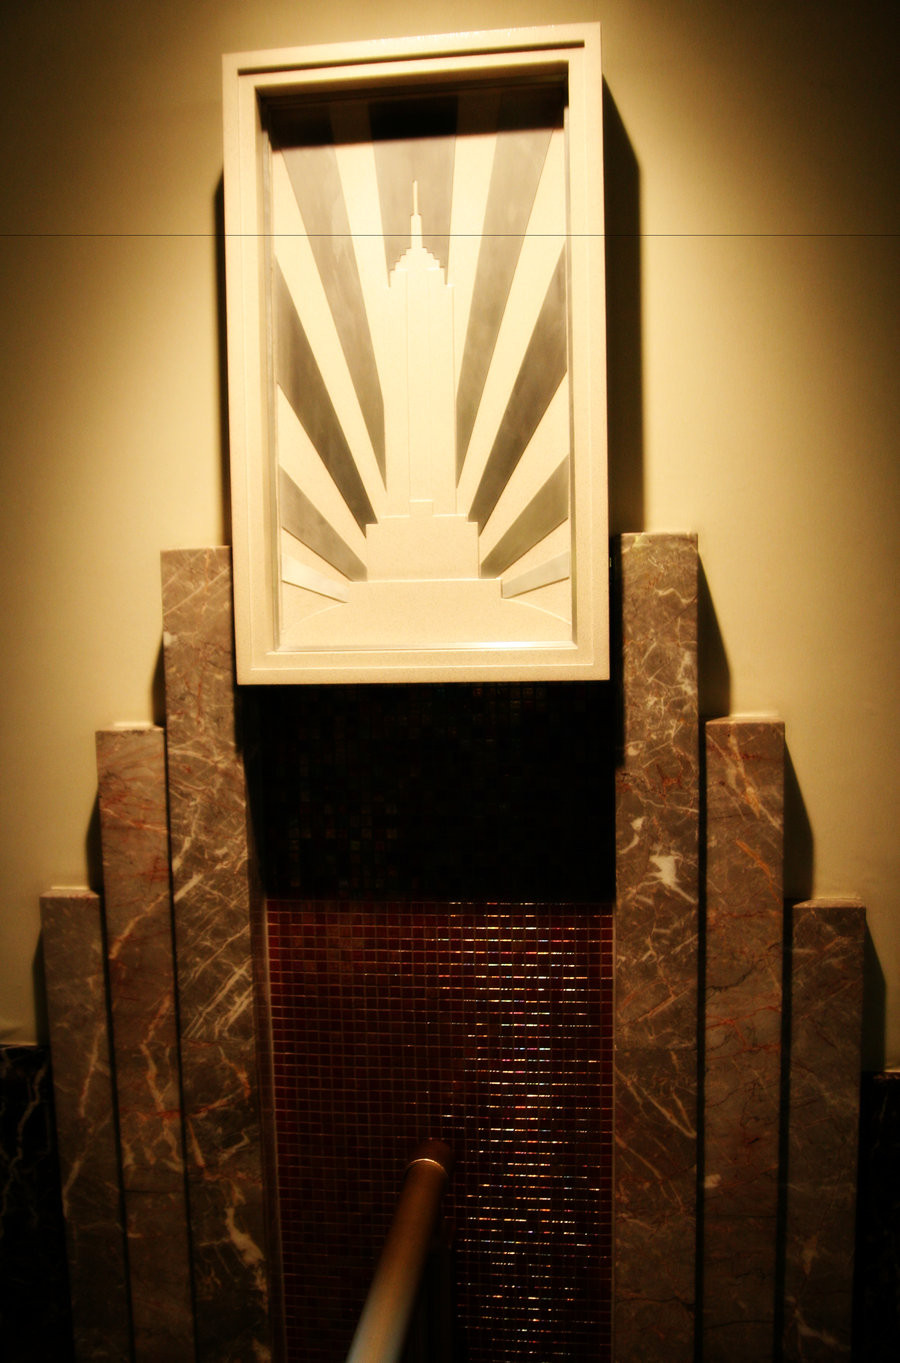 Best ideas about Art Deco Wall Art . Save or Pin Art deco wall misc by GlacierCodfish on DeviantArt Now.